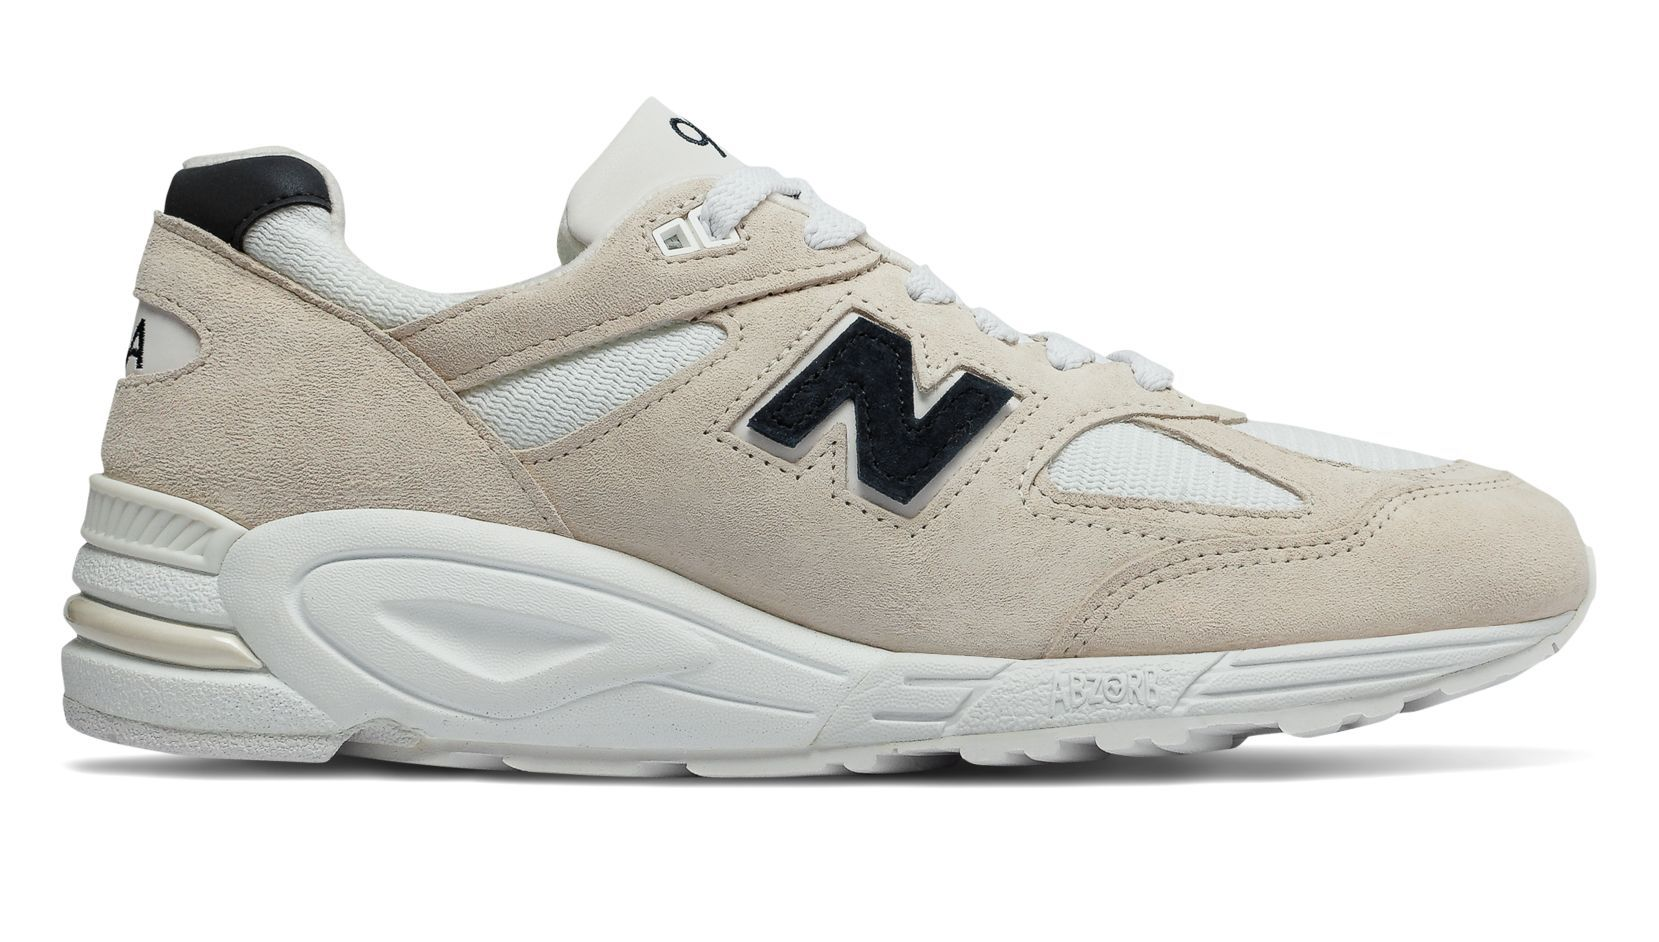 990v2 Made in US New balance